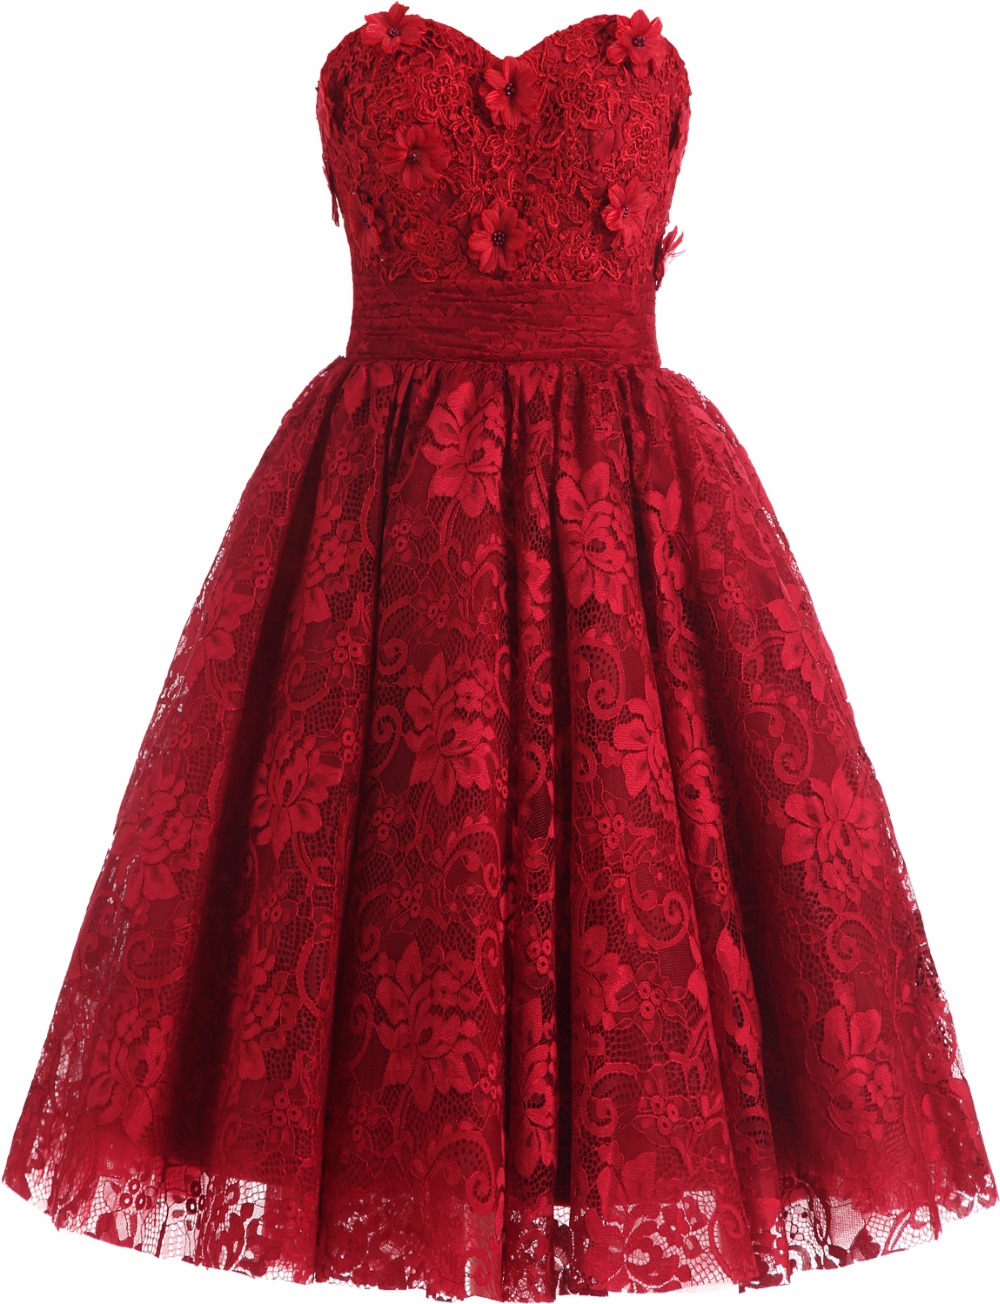 Maroon Cocktail Dress | Dress images